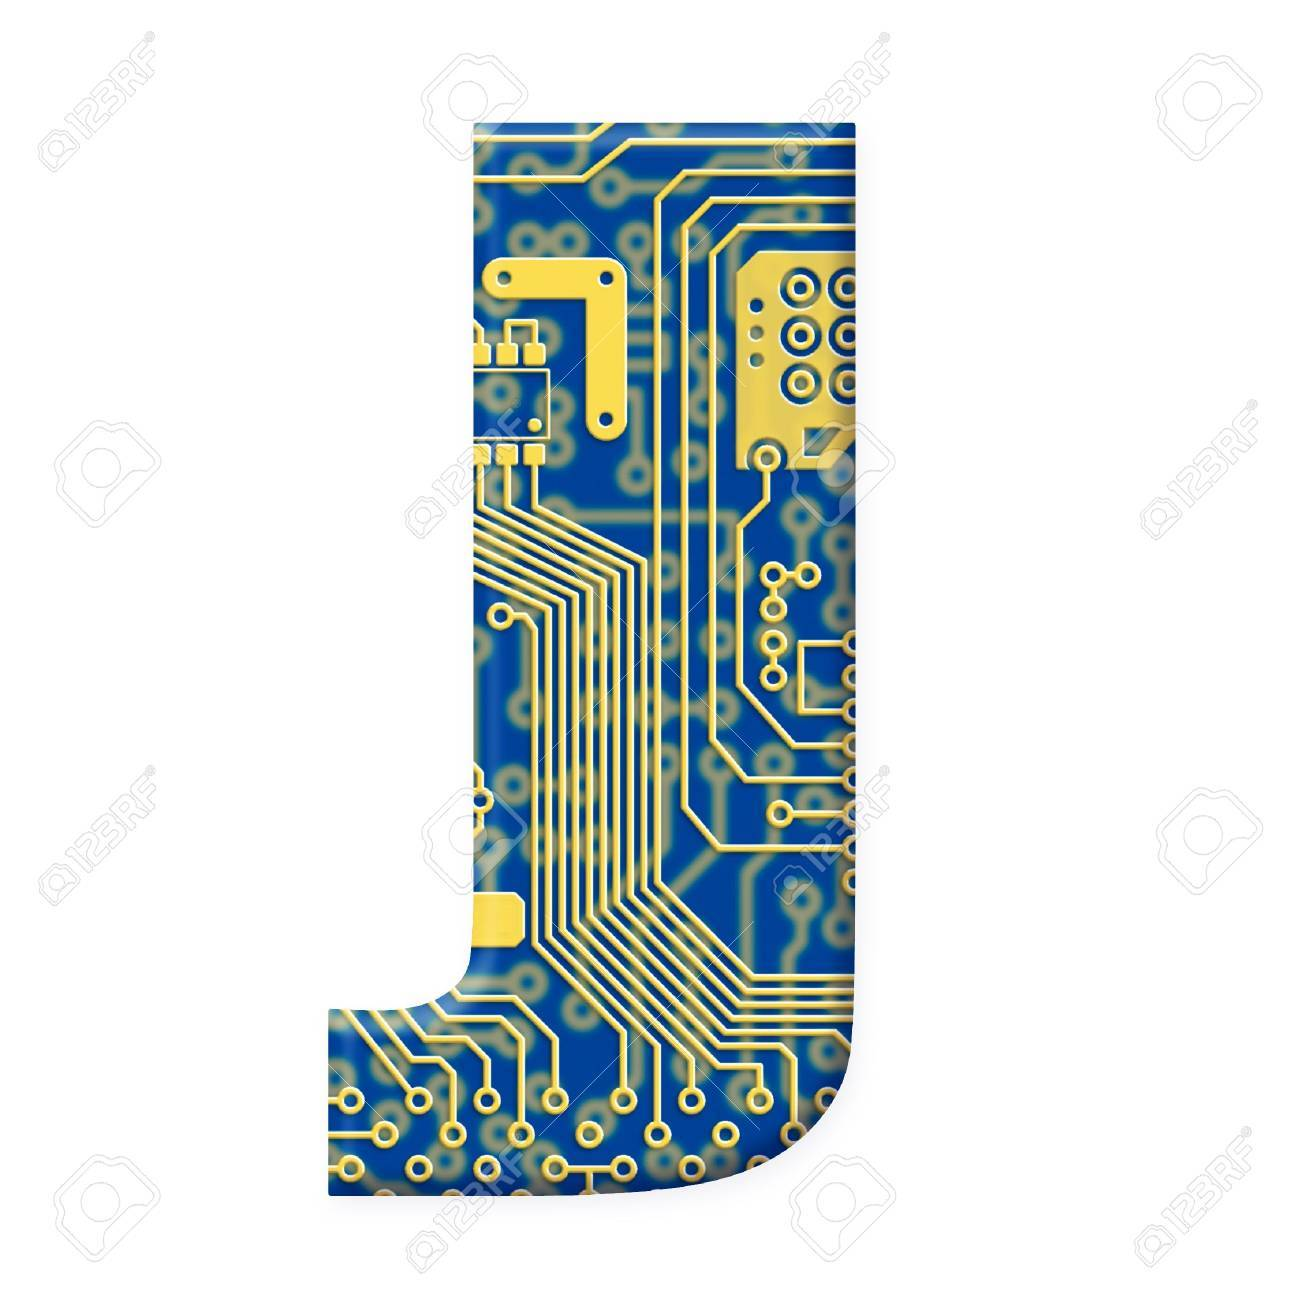 One letter from the electronic technology circuit board alphabet on a white background - J Stock Photo - 6353864